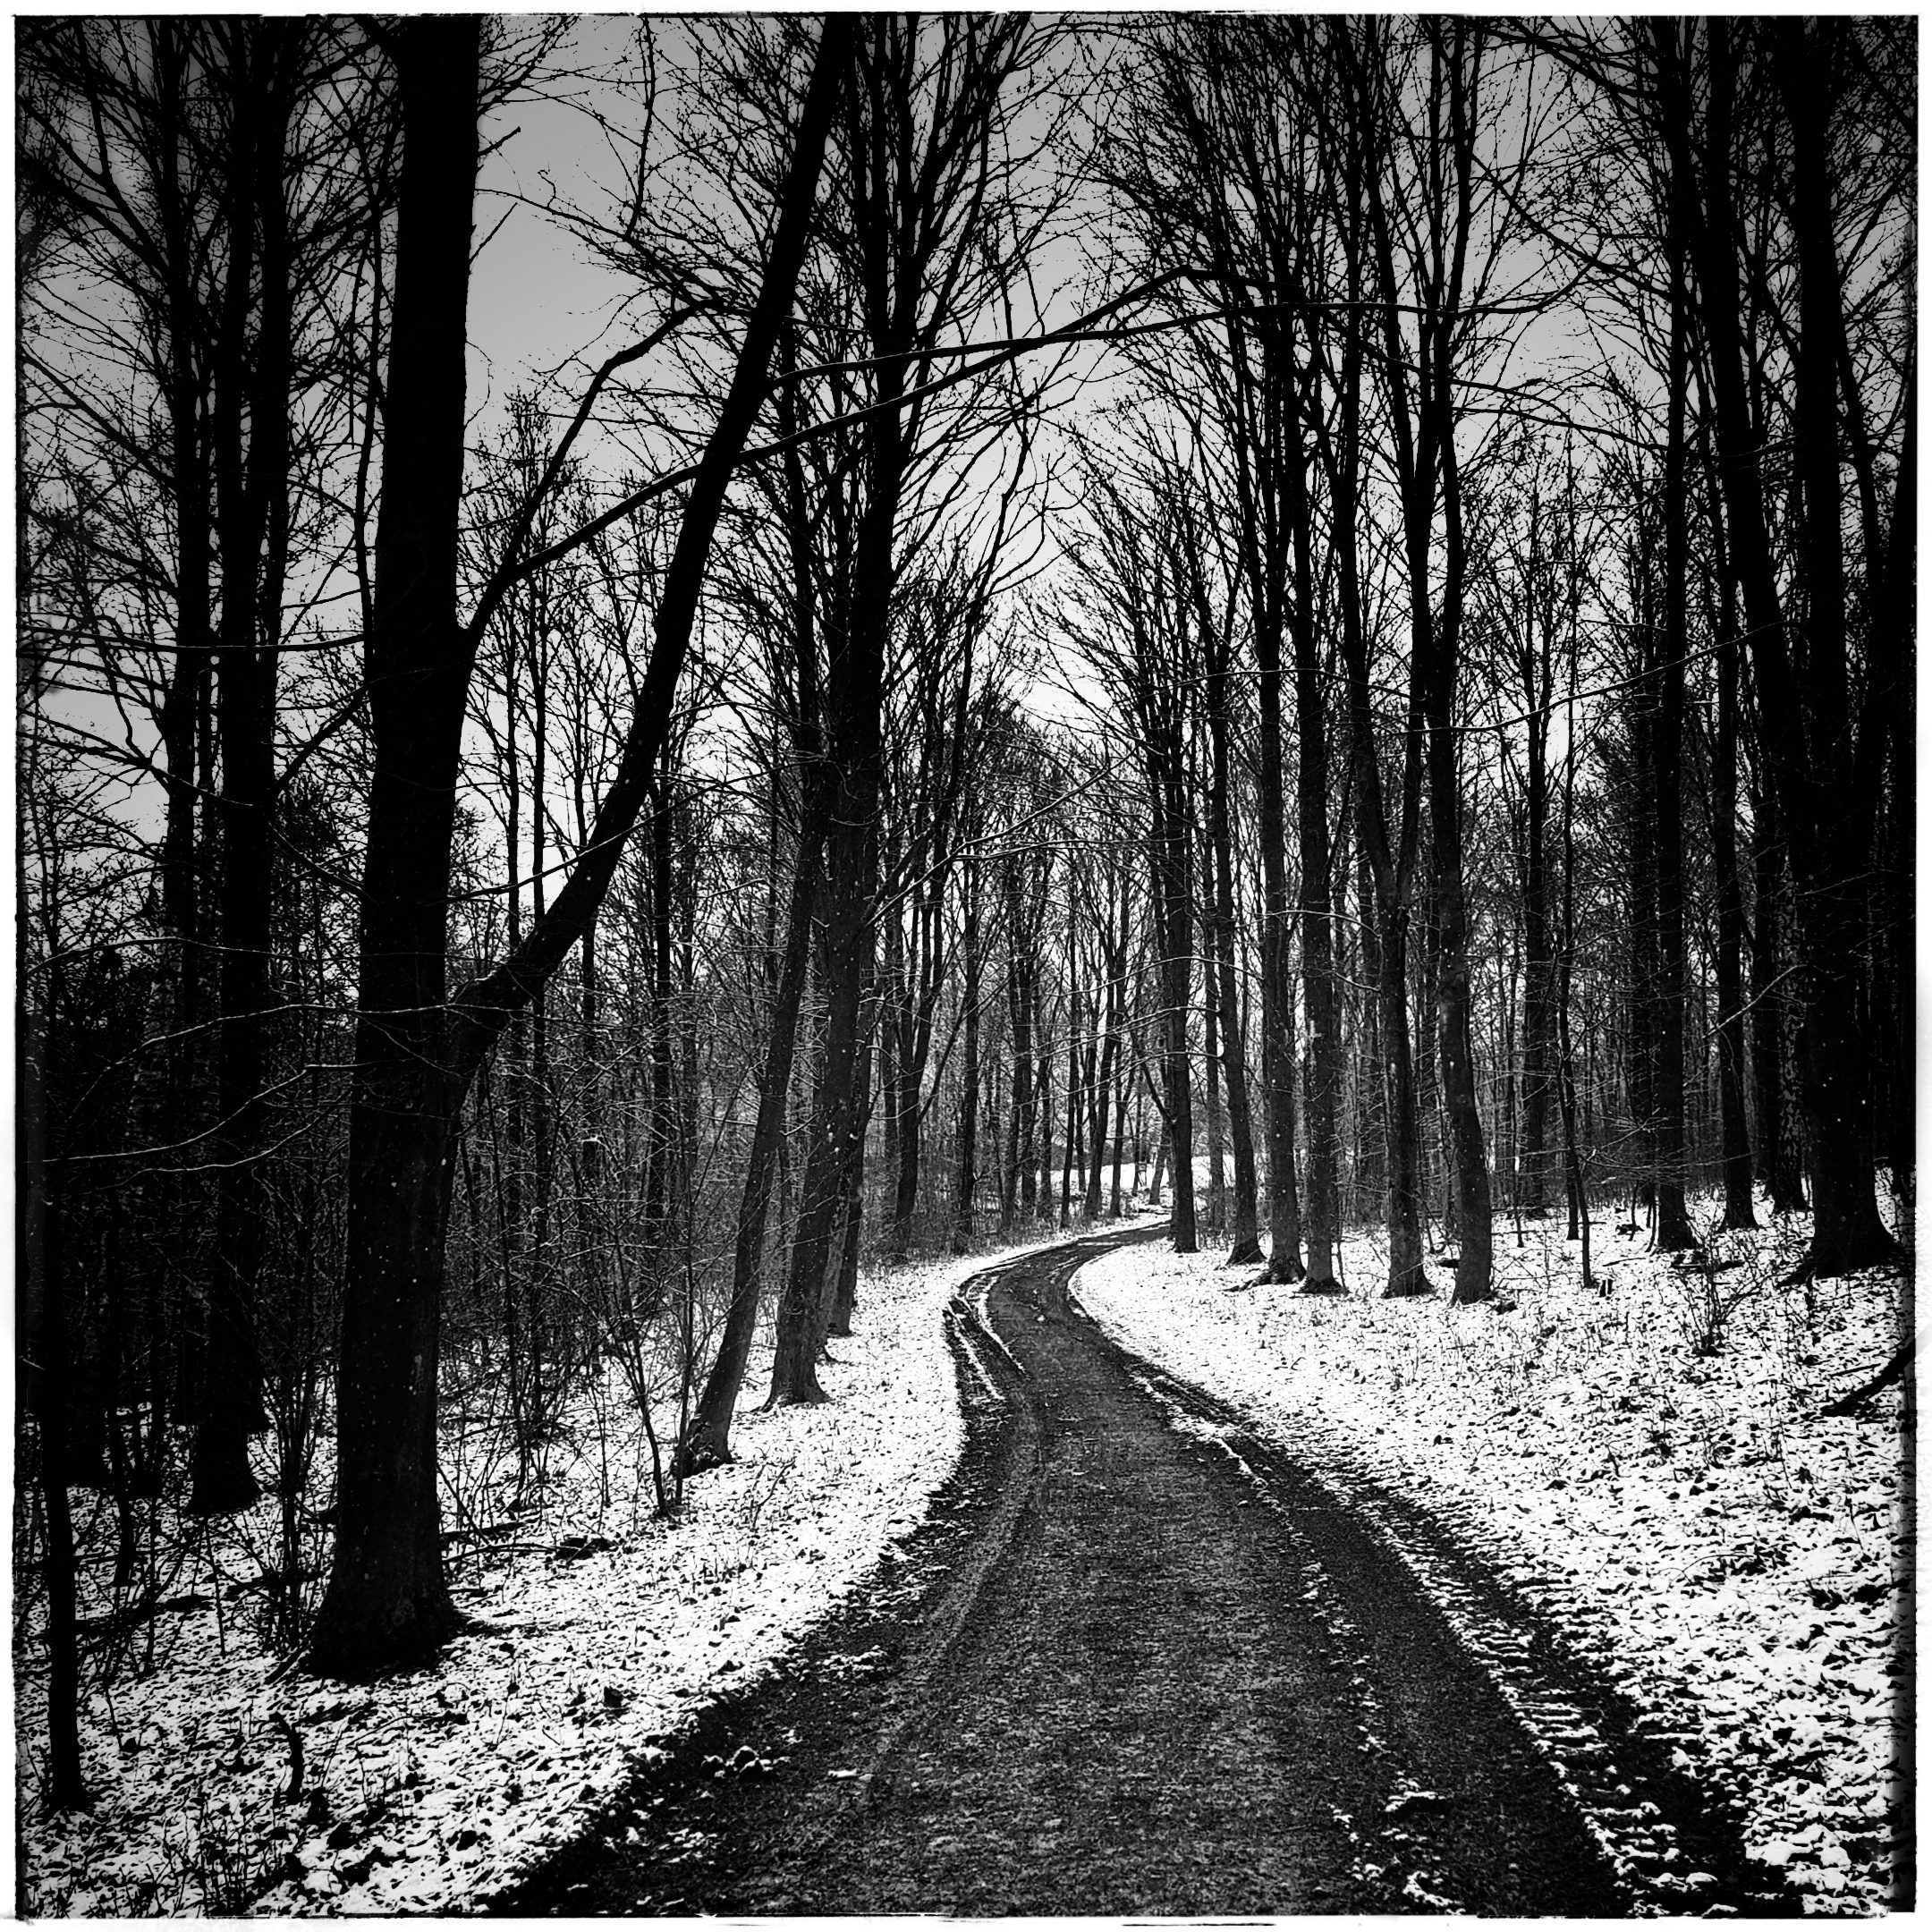 Day 37 - February 6: Long and winding road